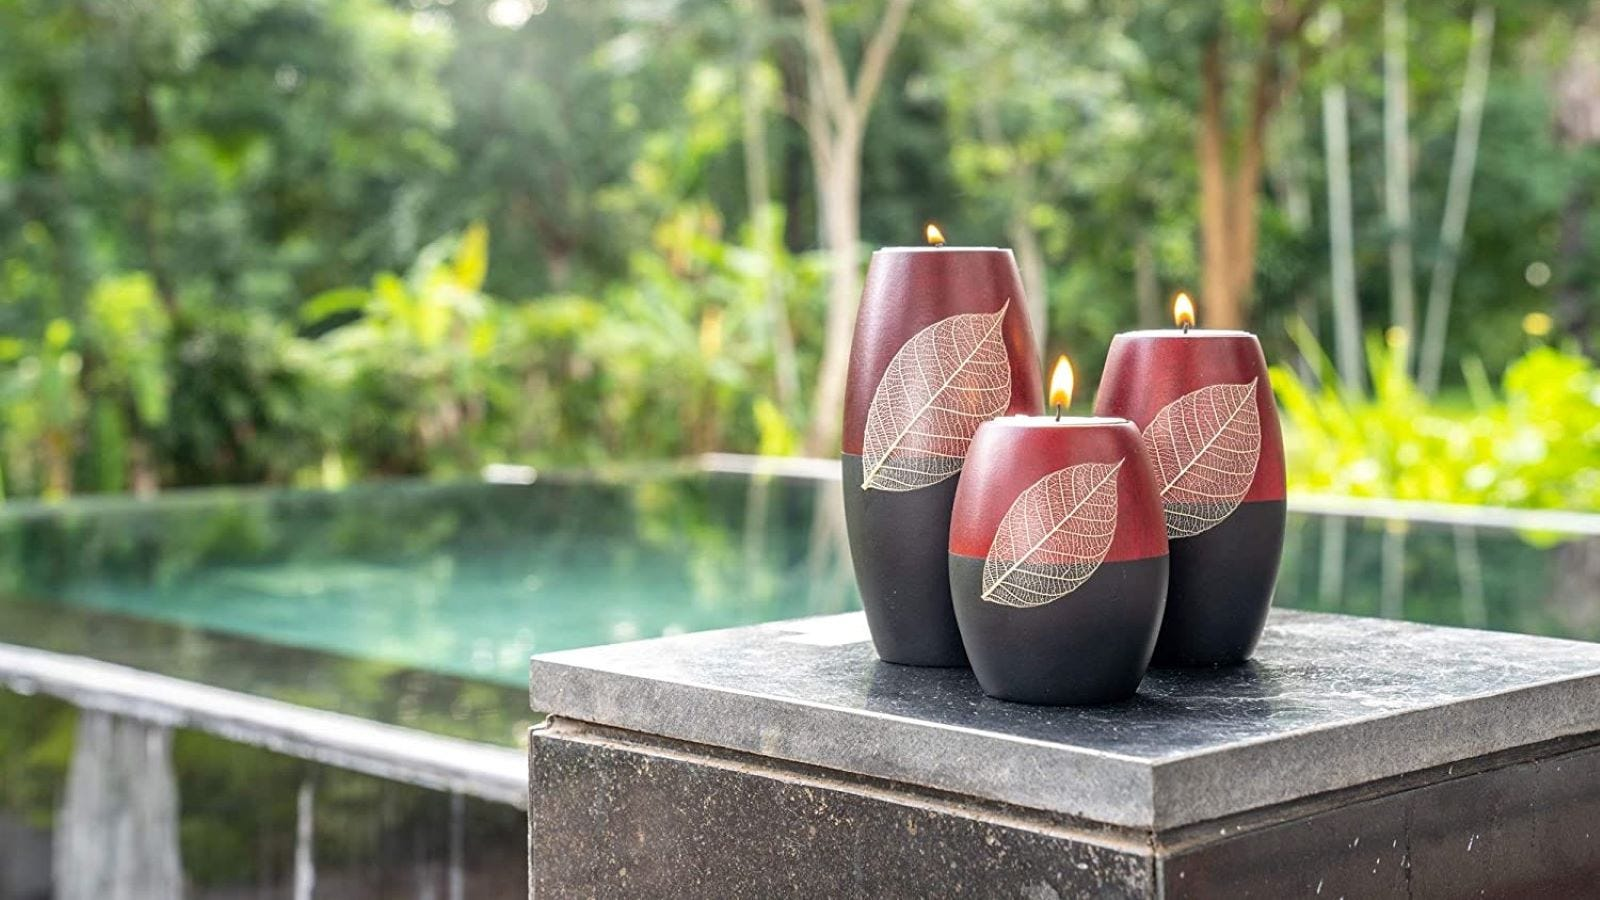 Three red and black wooden candle holders with a leaf patter sitting next to a window facing an infinity pool.